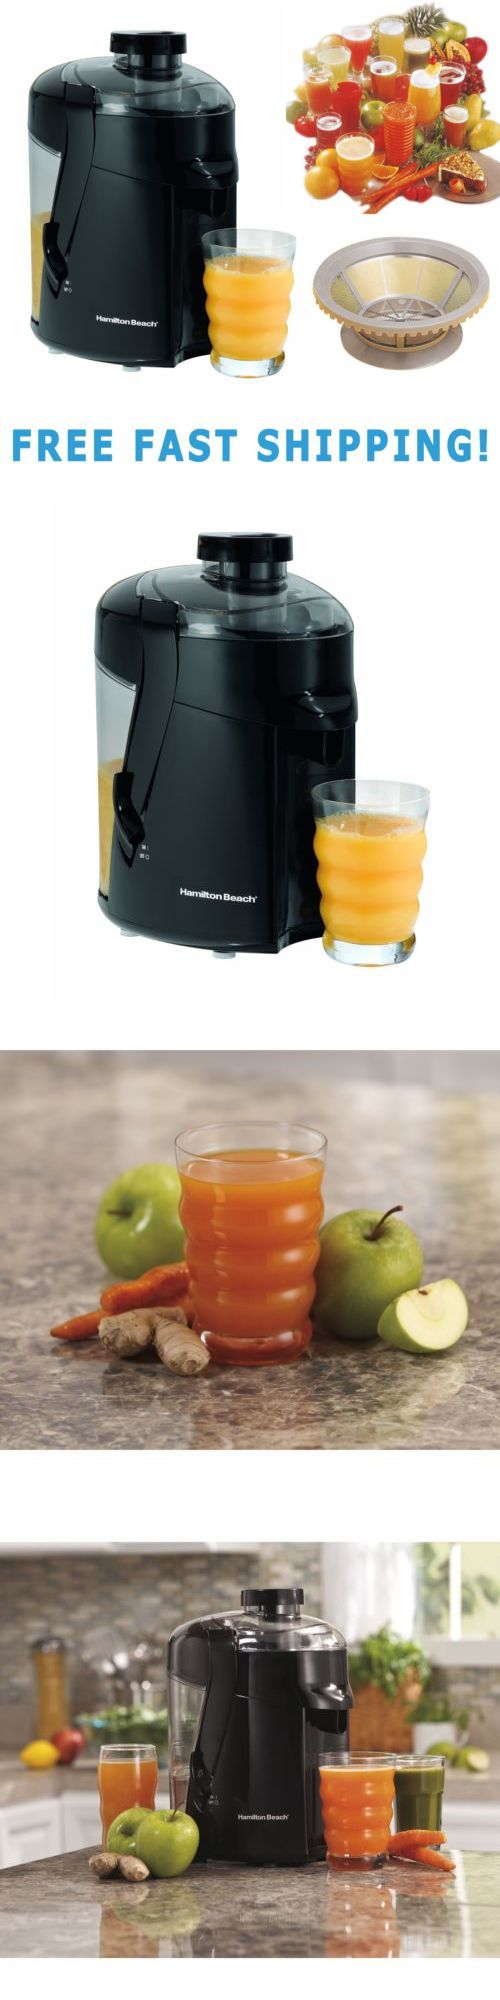 Vonshef Digital Slow Masticating Juicer Fruit Vegetable Cold Press Extractor : 17 best ideas about Juicer Machine on Pinterest Juicer ...